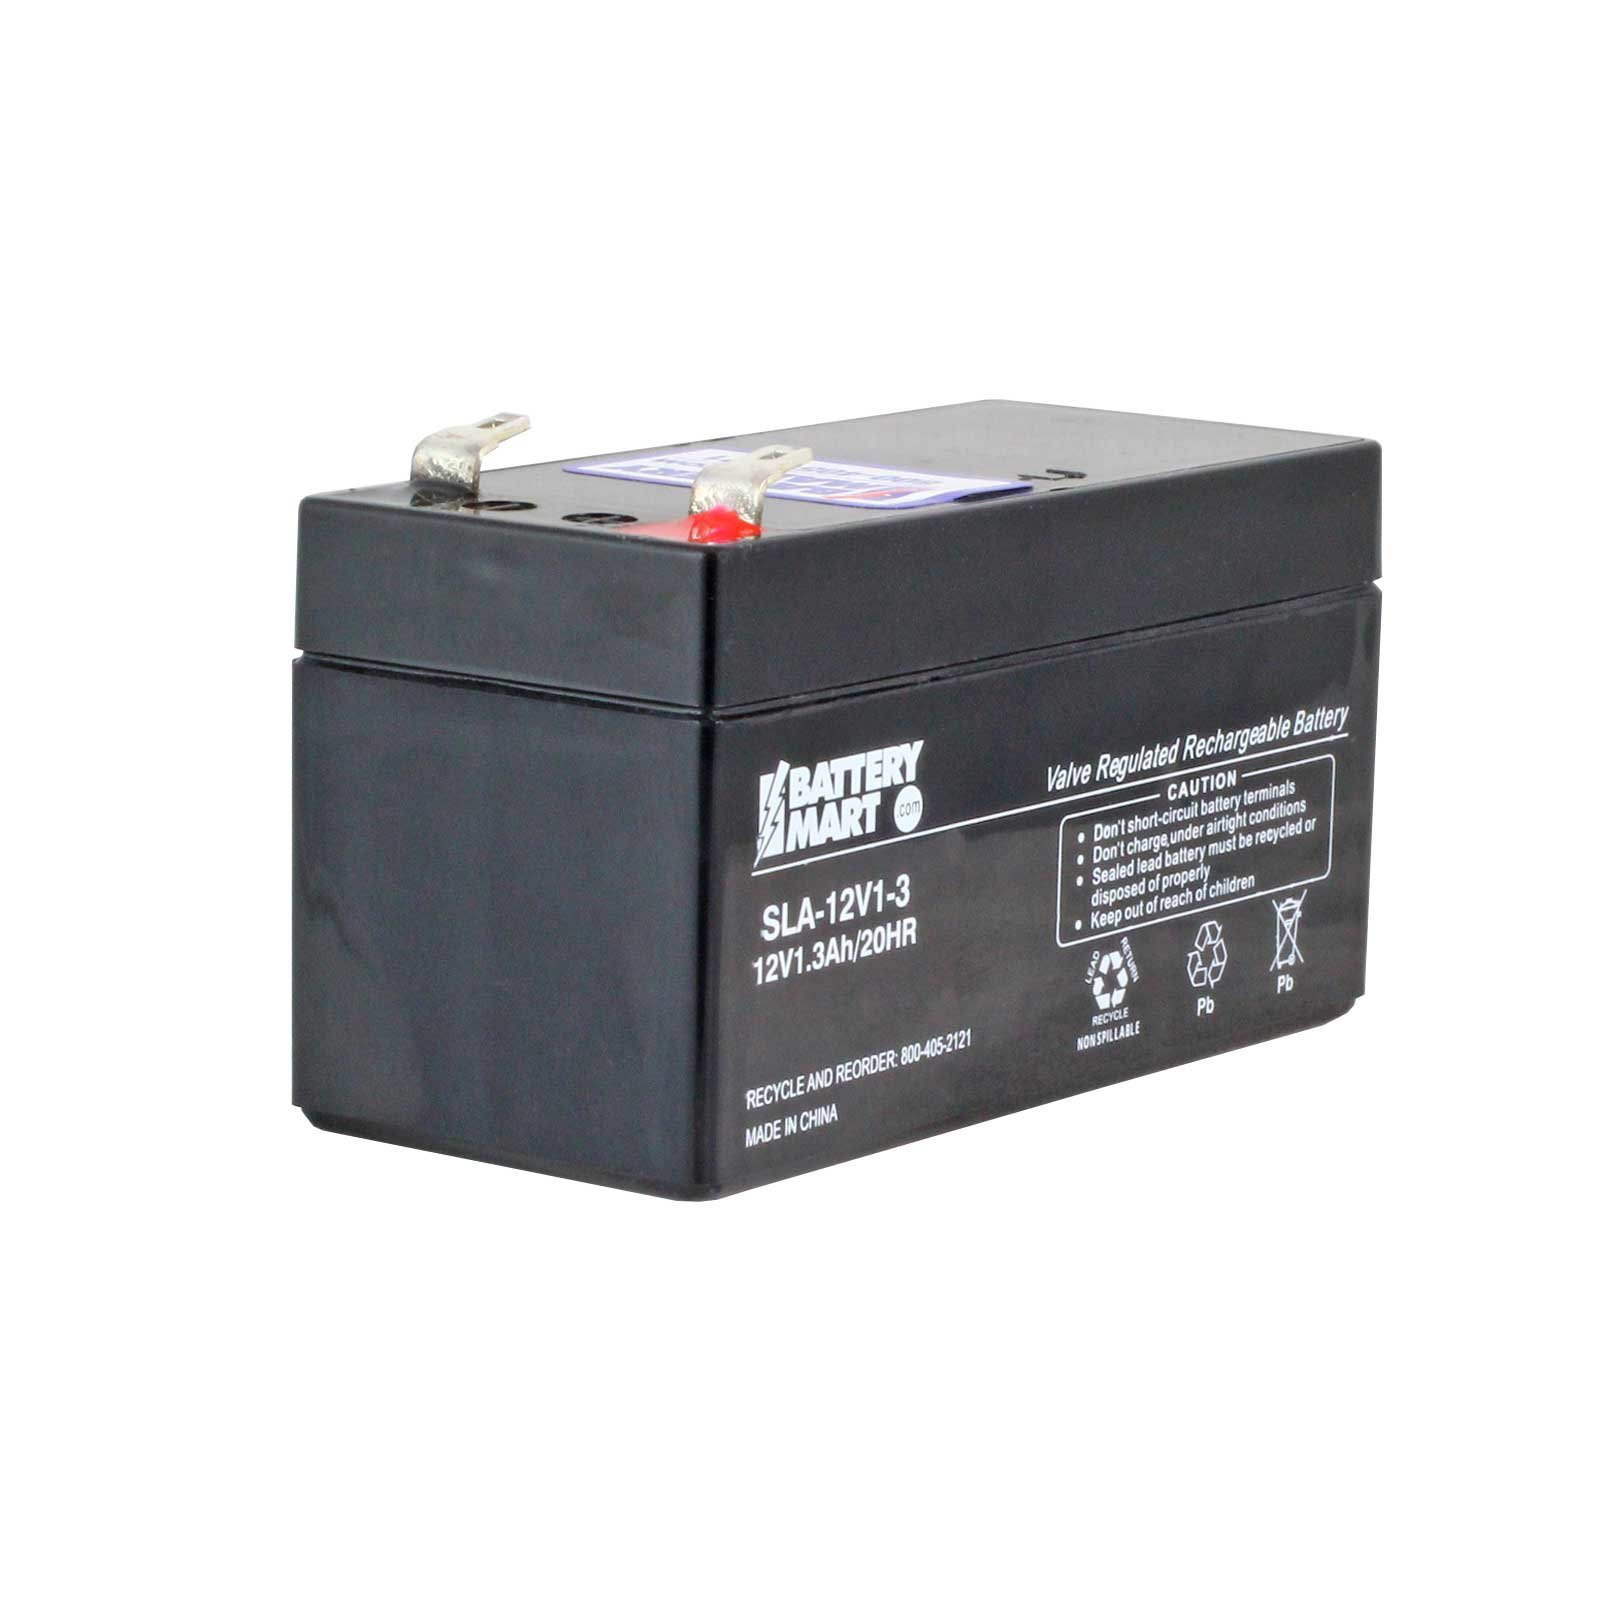 12 volt 1 2 ah sealed lead acid rechargeable battery f1. Black Bedroom Furniture Sets. Home Design Ideas